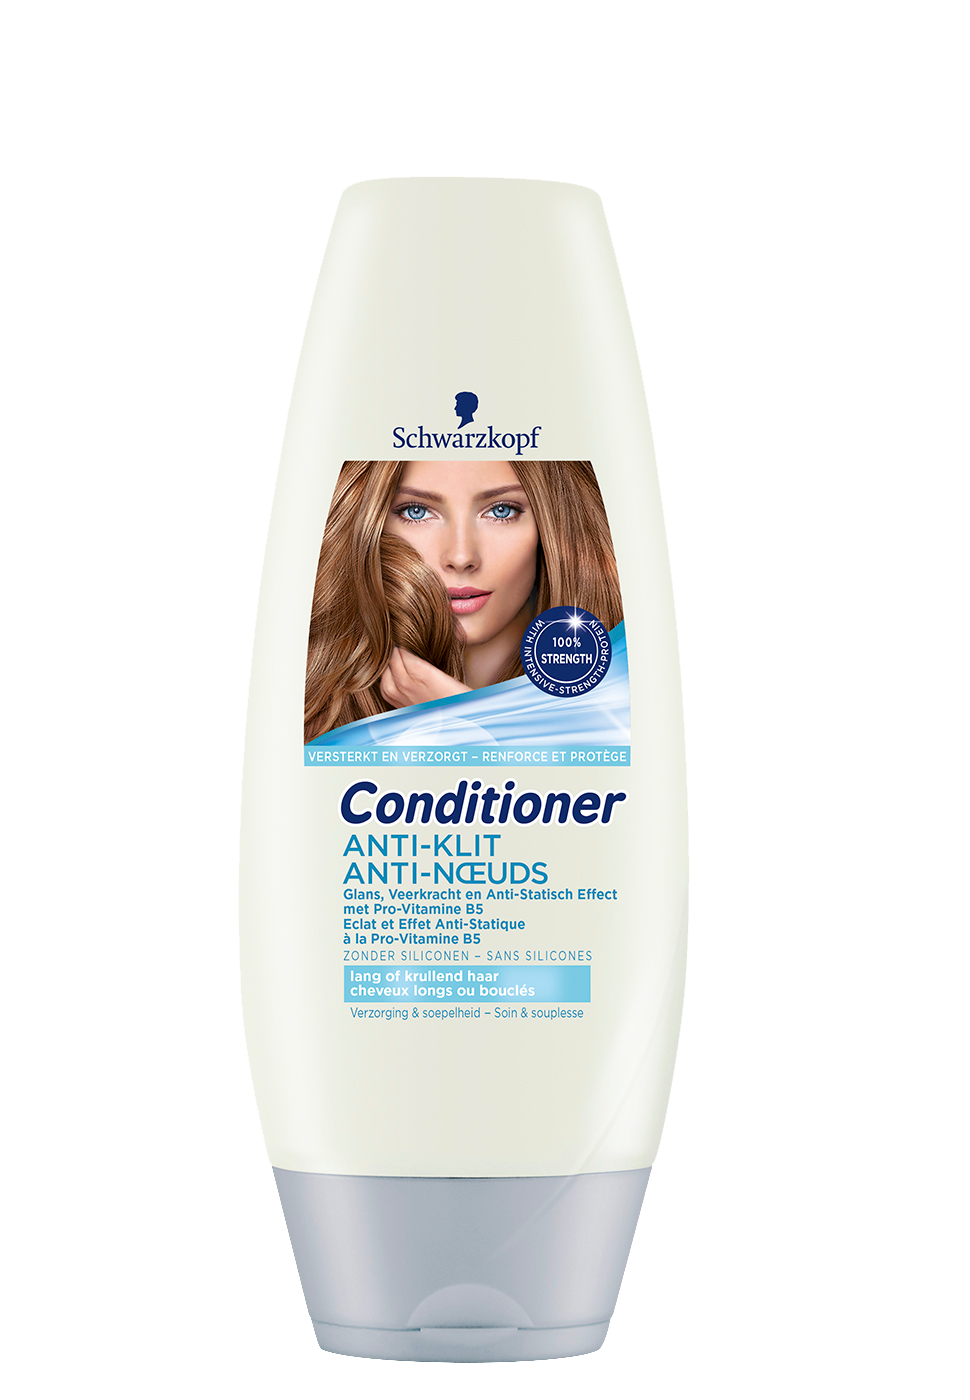 970x1400_Packs_SK_Conditioner-Anti-klit